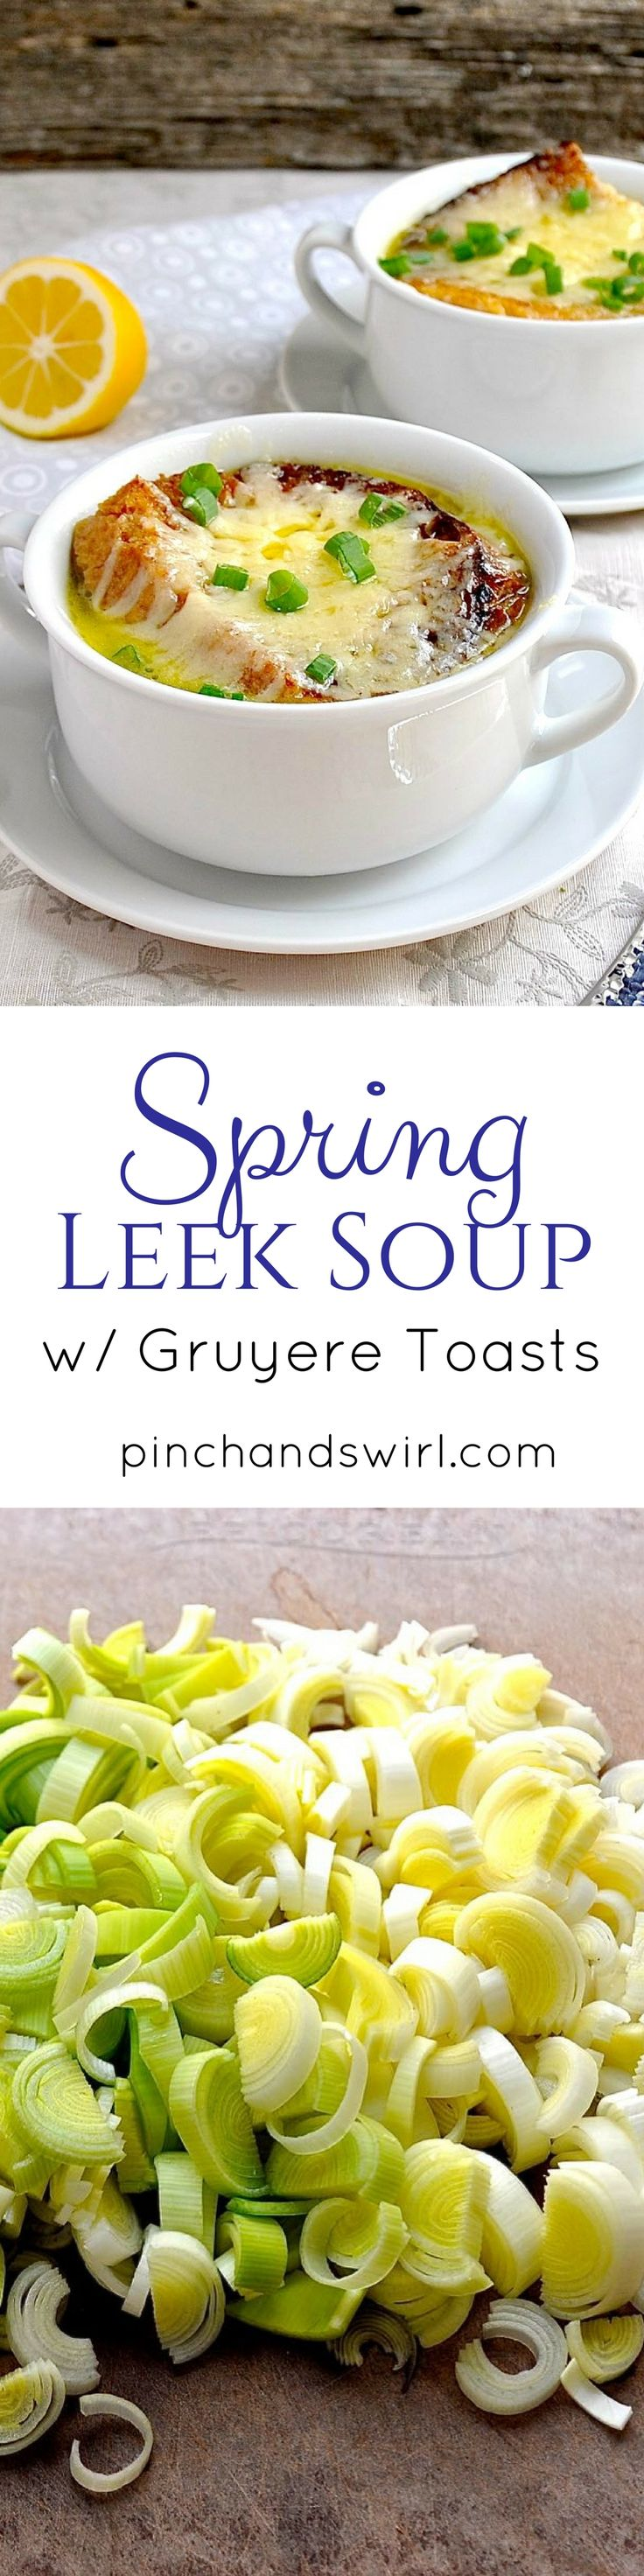 Spring Leek Soup is the perfect way to celebrate the tender leeks of spring! Think of this soup as the delicate cousin of French Onion soup. Both soups are topped with an oversized, melted cheese covered crouton, but instead of the deep, dark broth of French Onion soup, this leek soup has a light buttery broth and is prepared in a fraction of the time - 20 minutes from start to finish. via @pinchandswirl